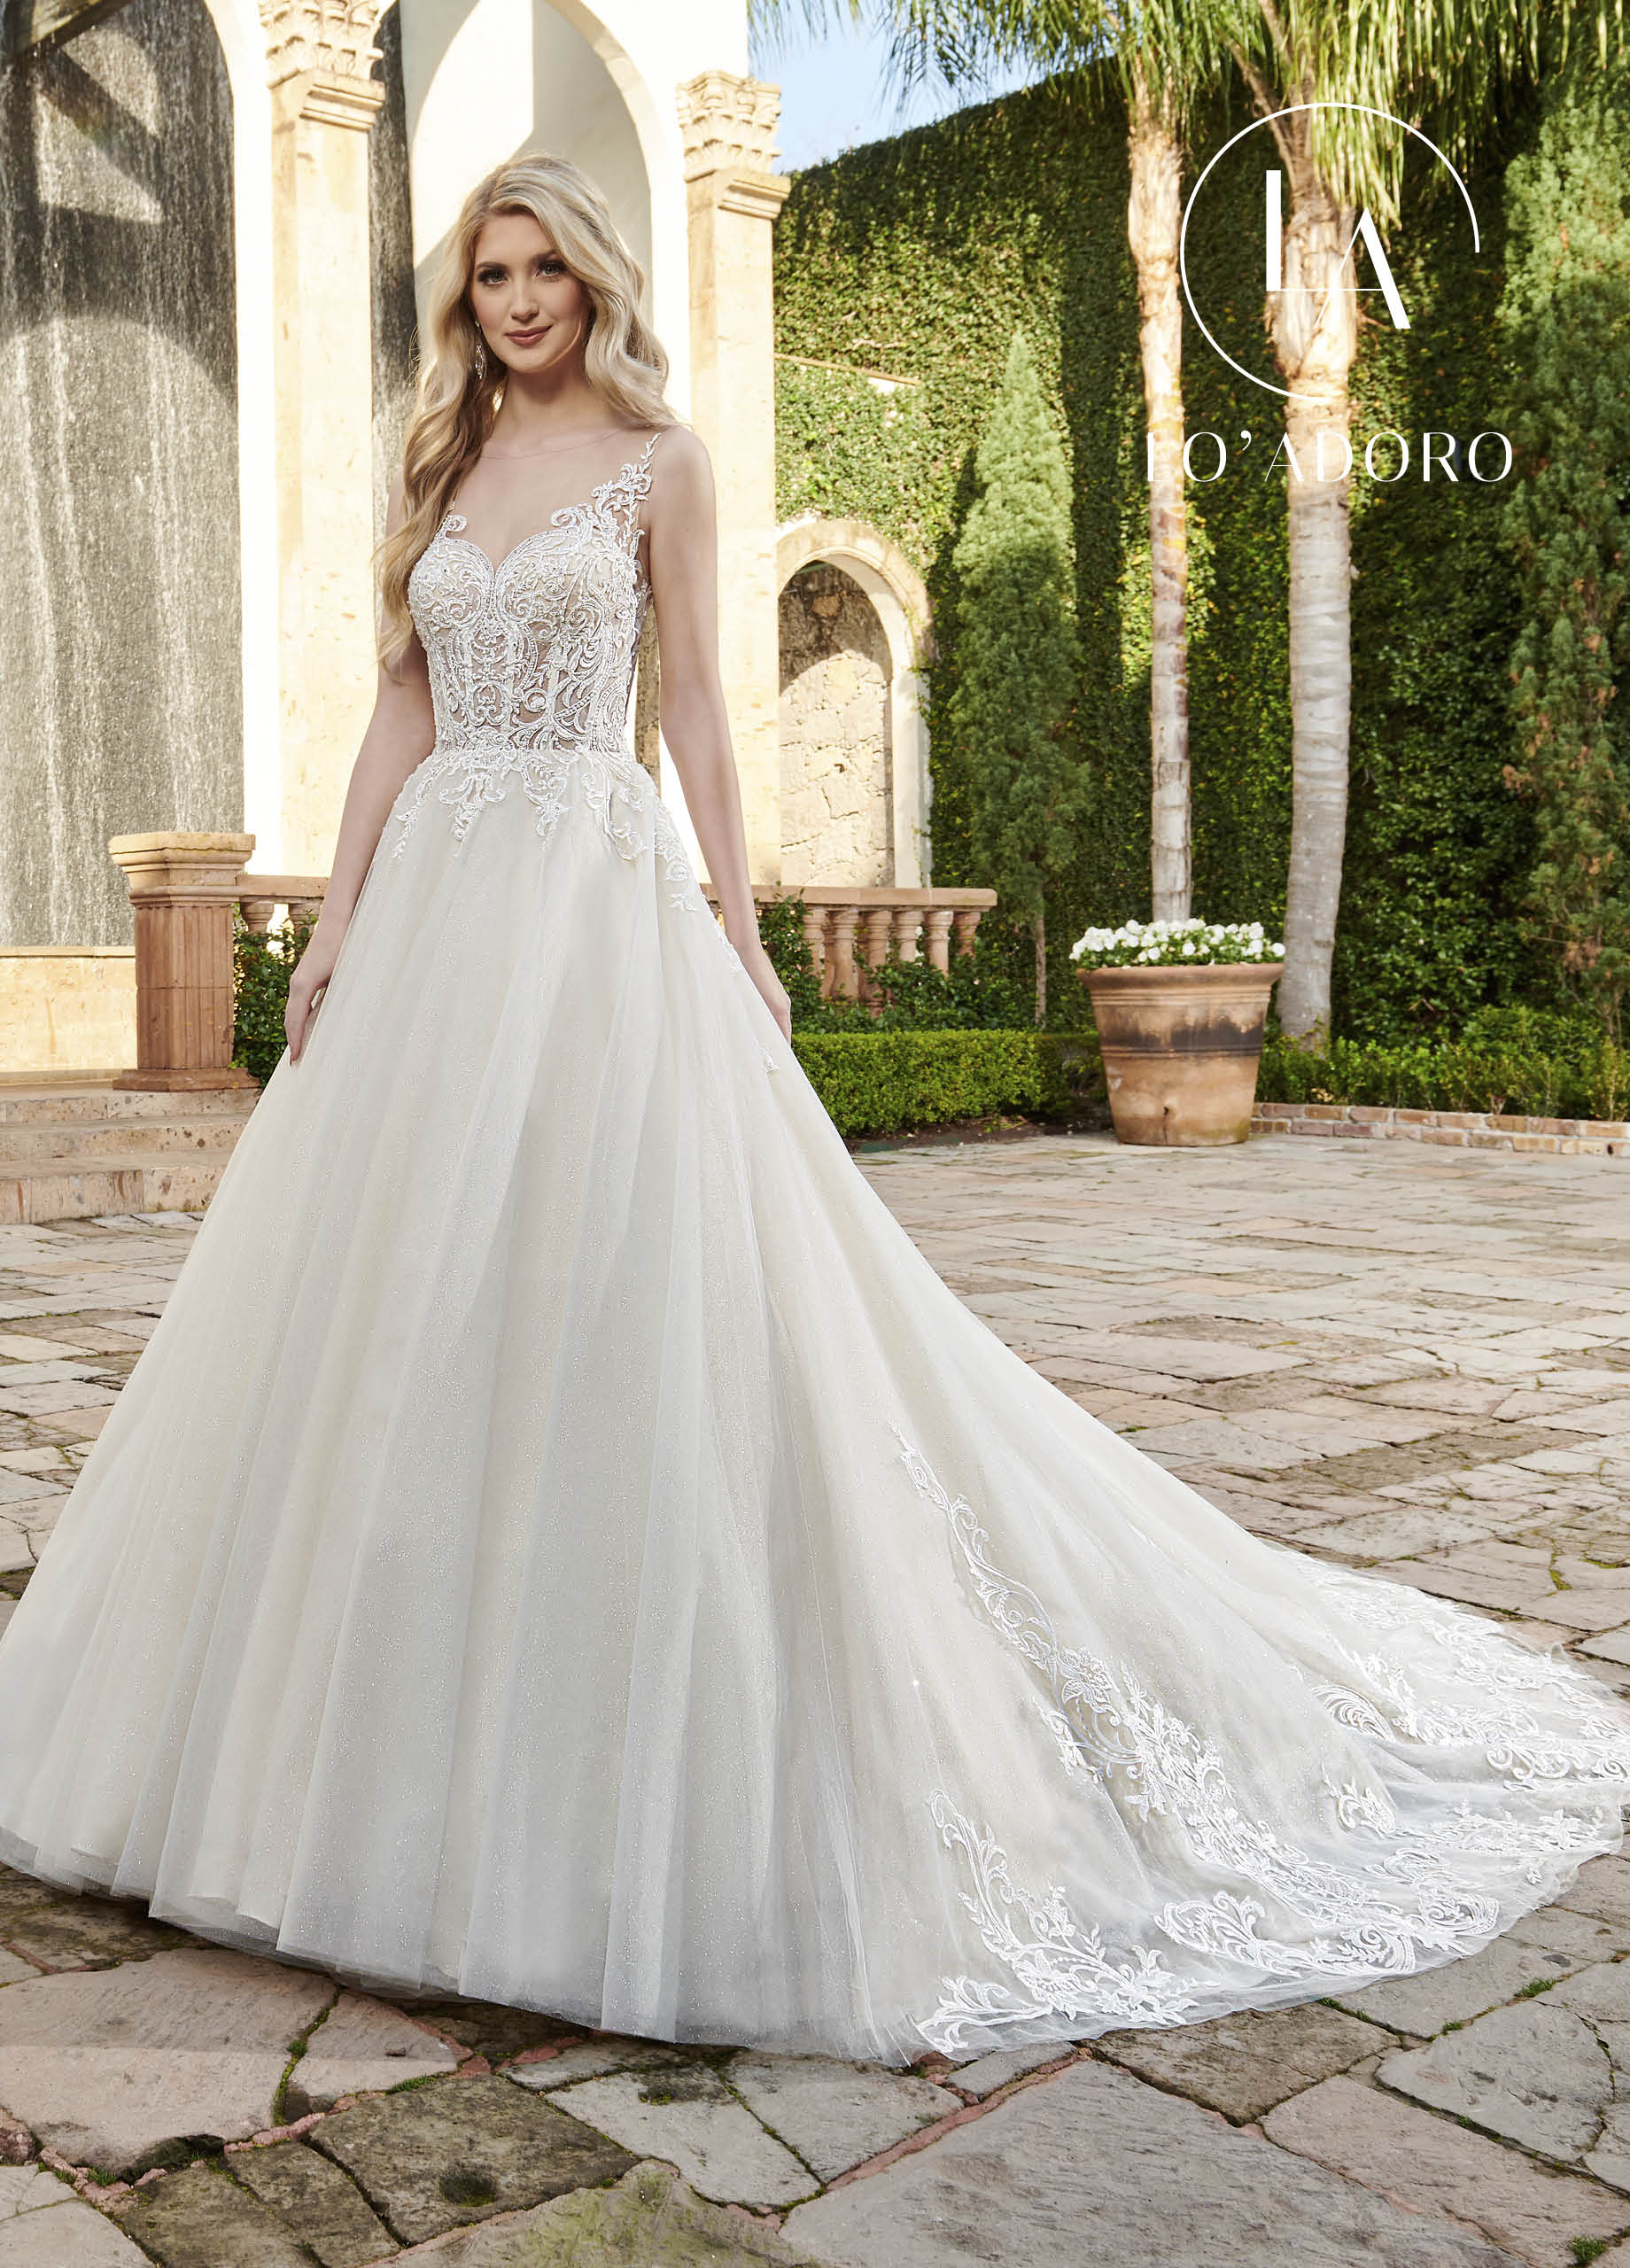 Sheer A-Line Lo' Adoro Bridal in Ivory Color